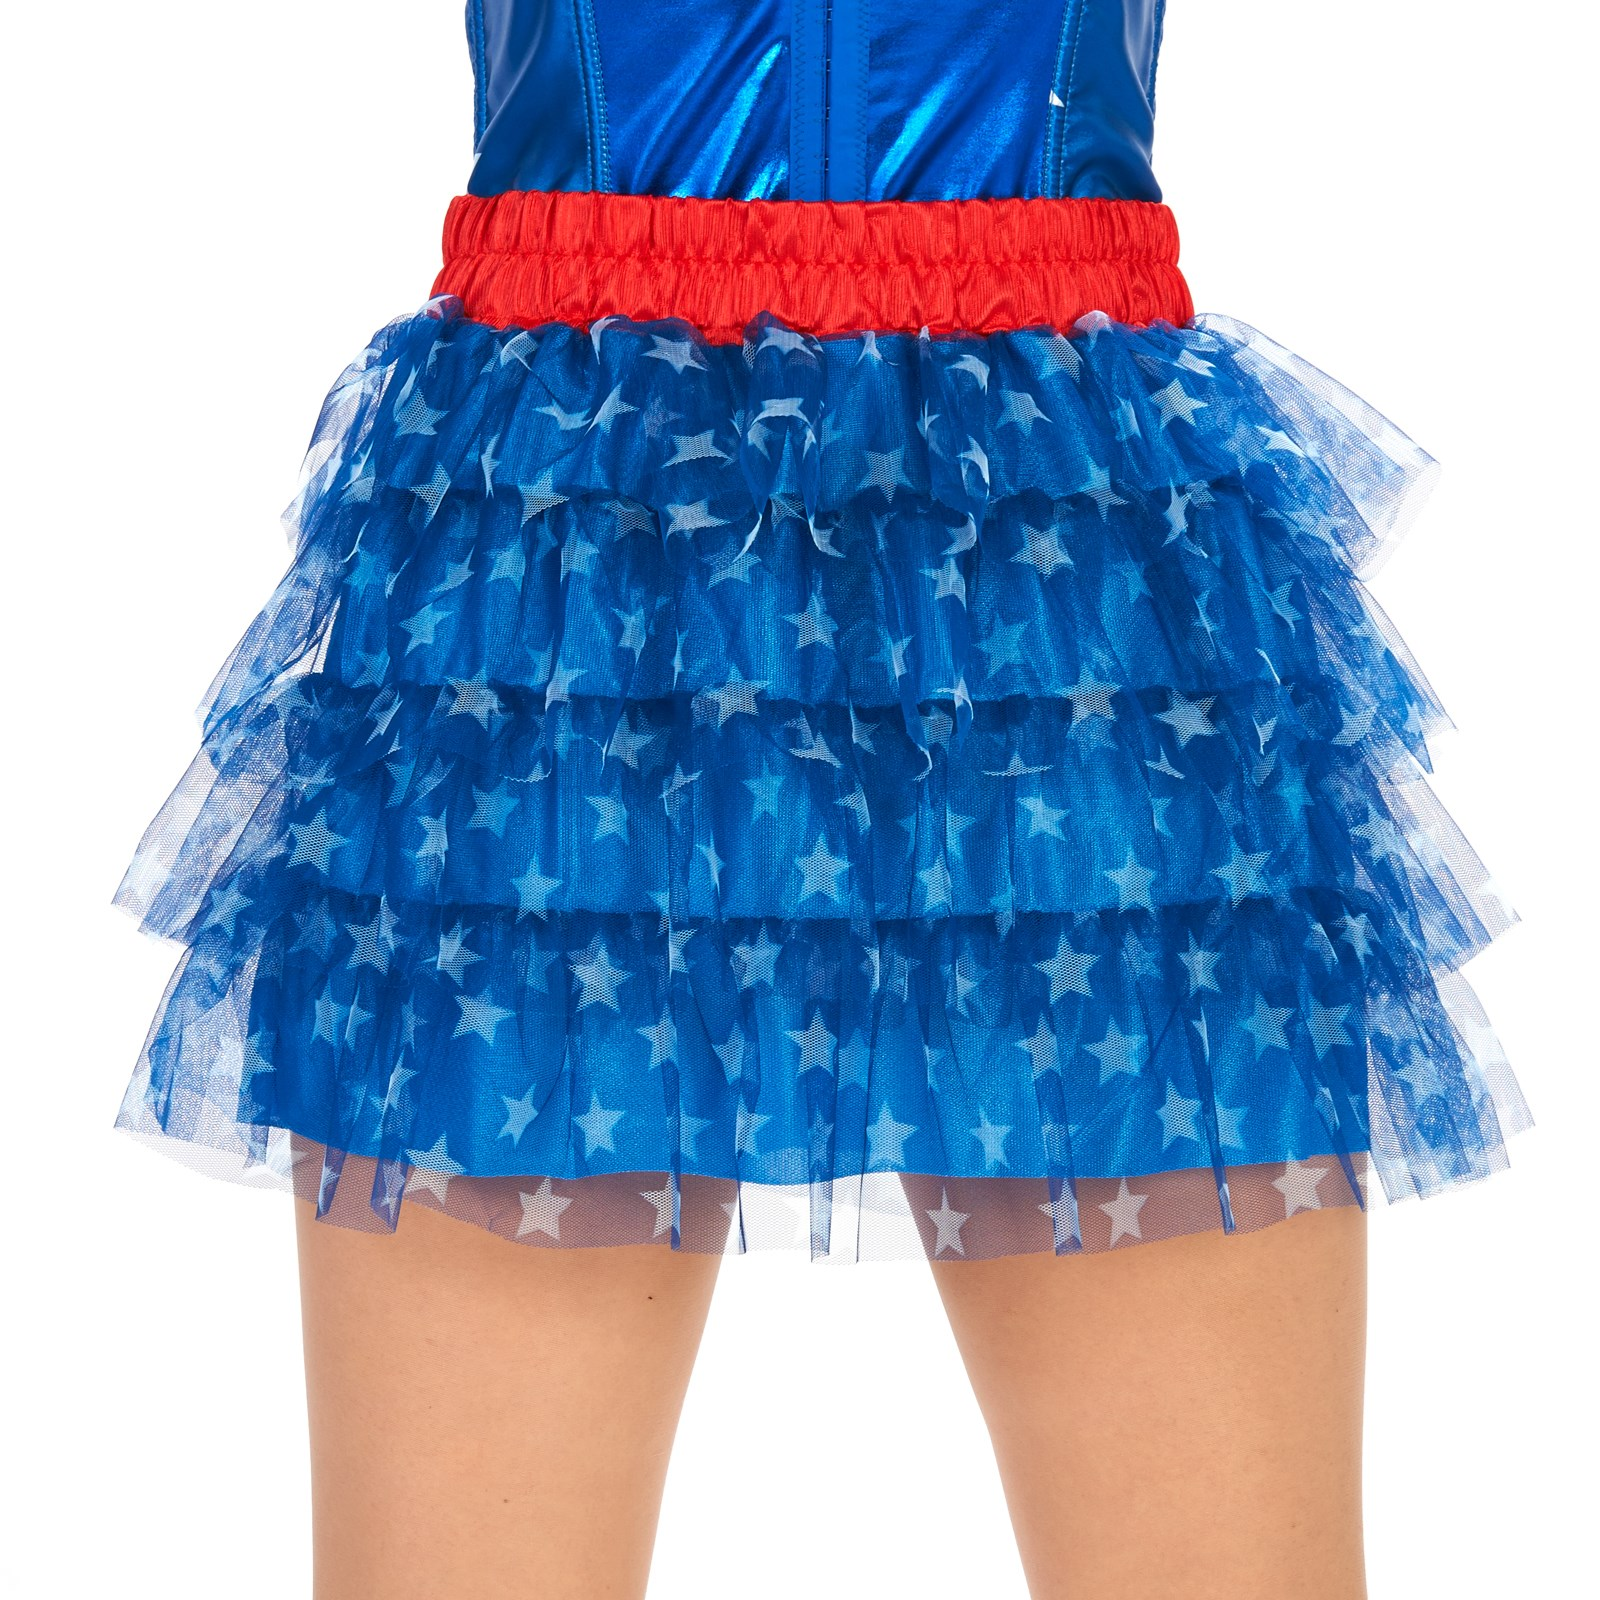 LONG Wonder Women Tutu Royal Blue with White Stars (5) Your Price: $ Available to Order. SHORT ALL STAR Cheerleader Tutu Set White Royal Blue. Your Price: $ Available to Order. LONG ALL STAR Cheerleader Tutu Set White Royal Blue. Your Price: $